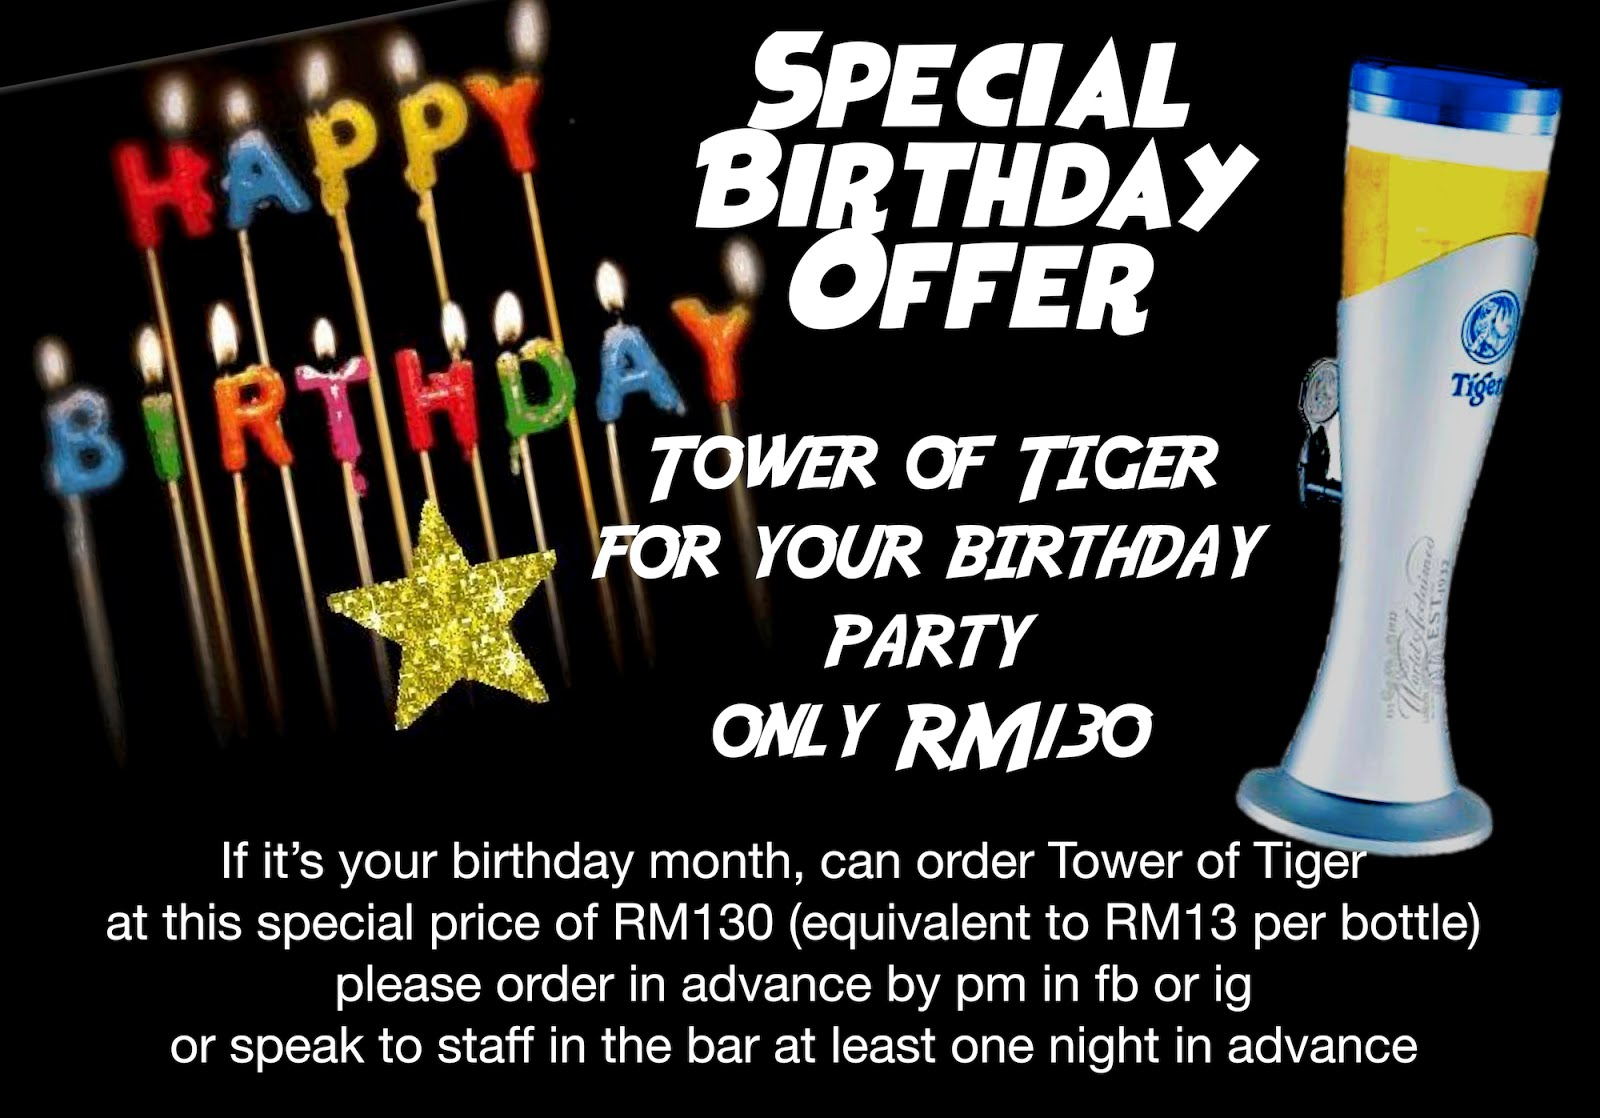 Birthday special offer